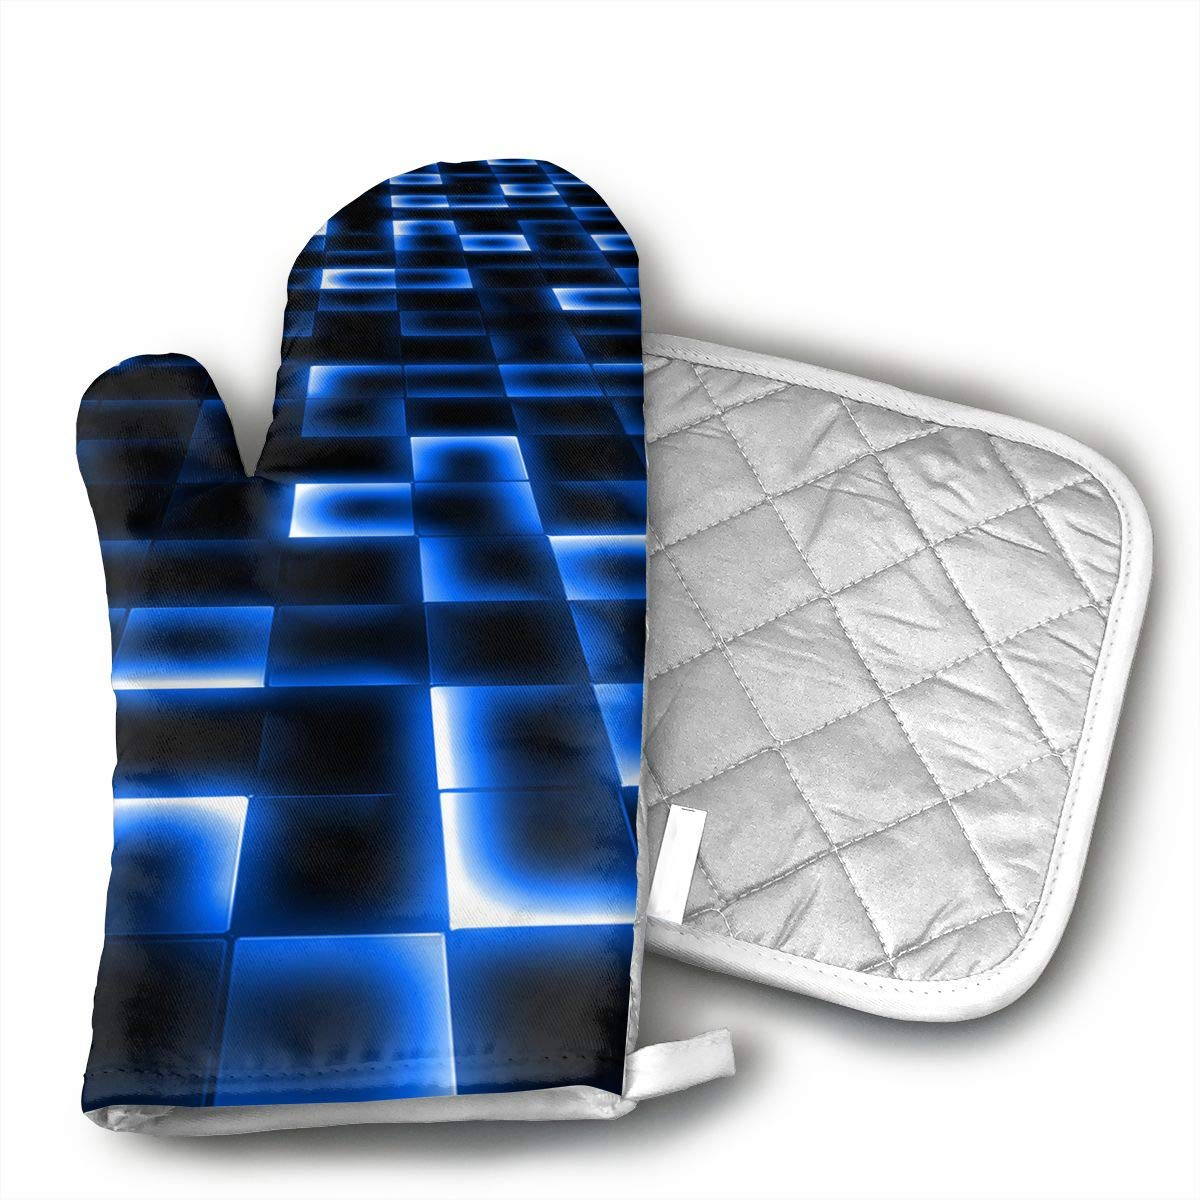 Sci Fi UFO Landing Pad Oven Mitts and Pot Holders Set with Polyester Cotton Non-Slip Grip, Heat Resistant, Oven Gloves for BBQ Cooking Baking, Grilling